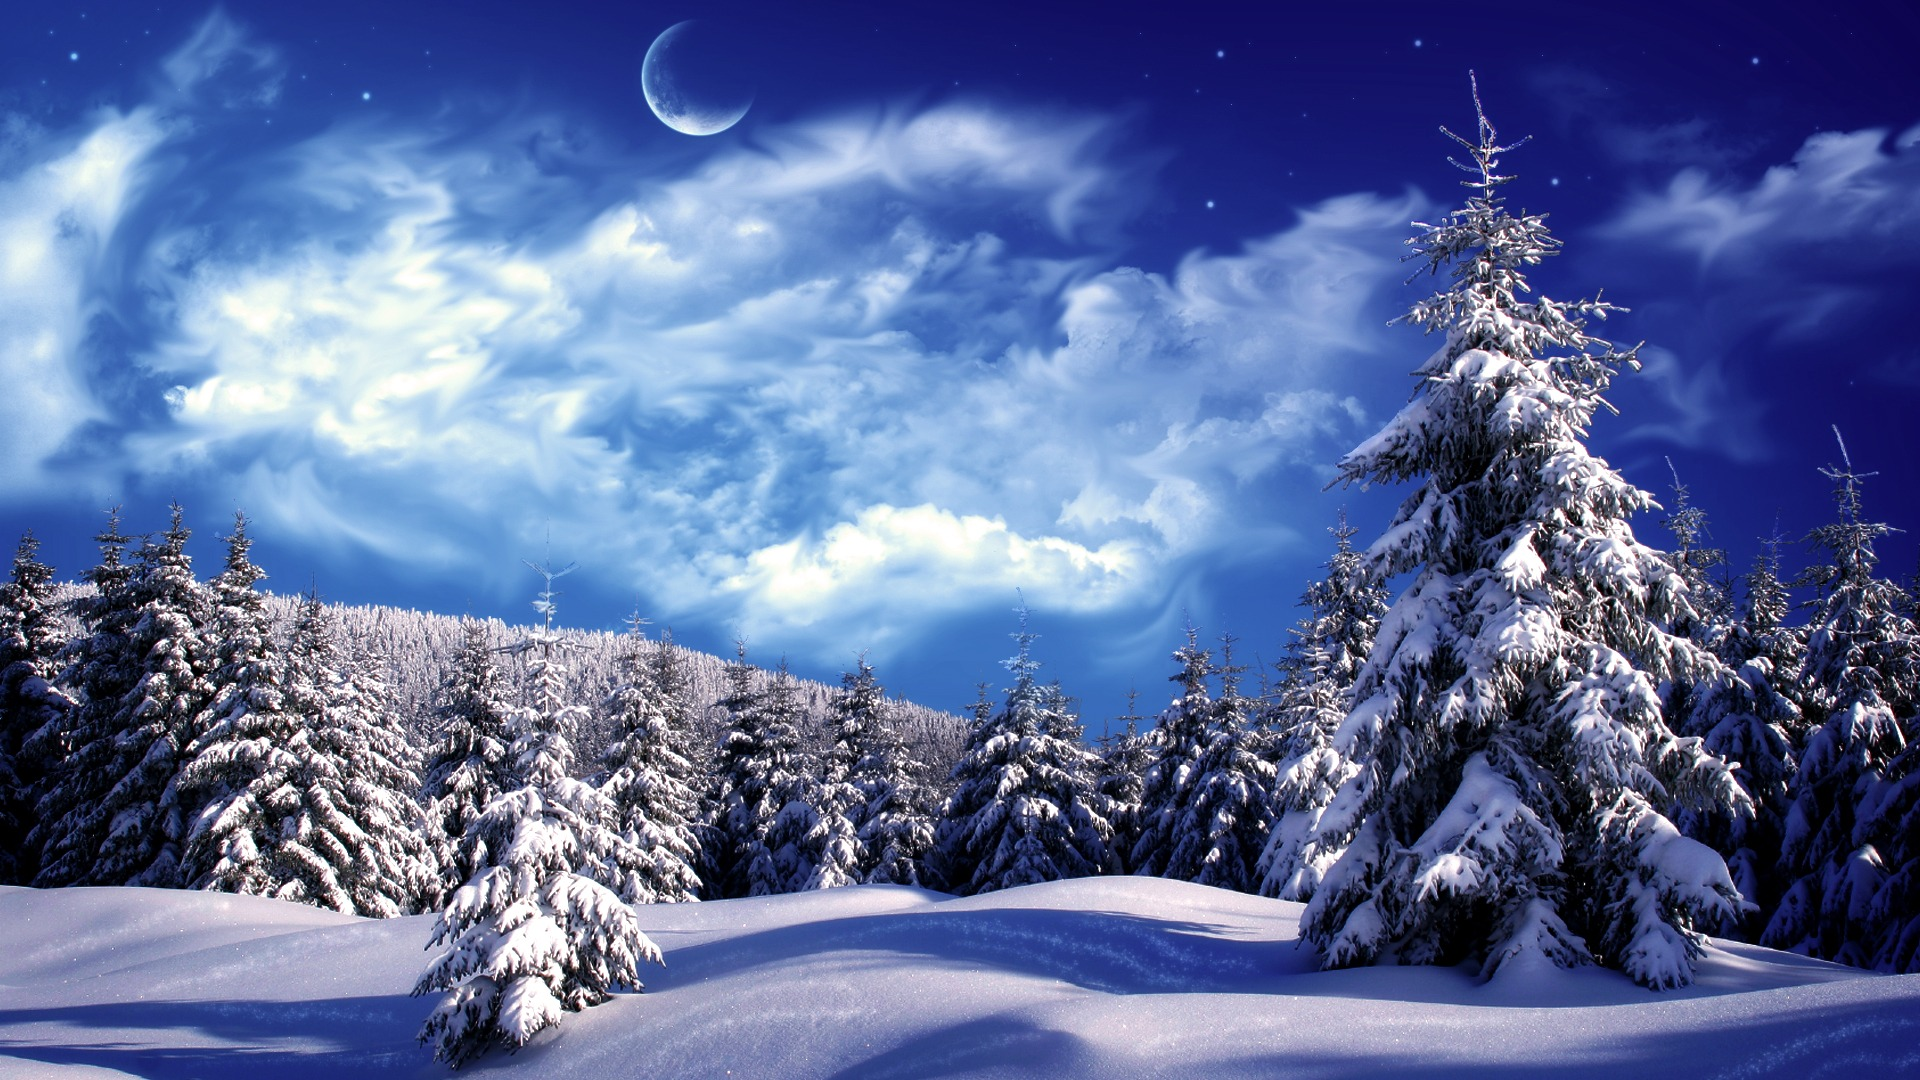 christmas winter scenes wallpaper which is under the winter wallpapers 1920x1080